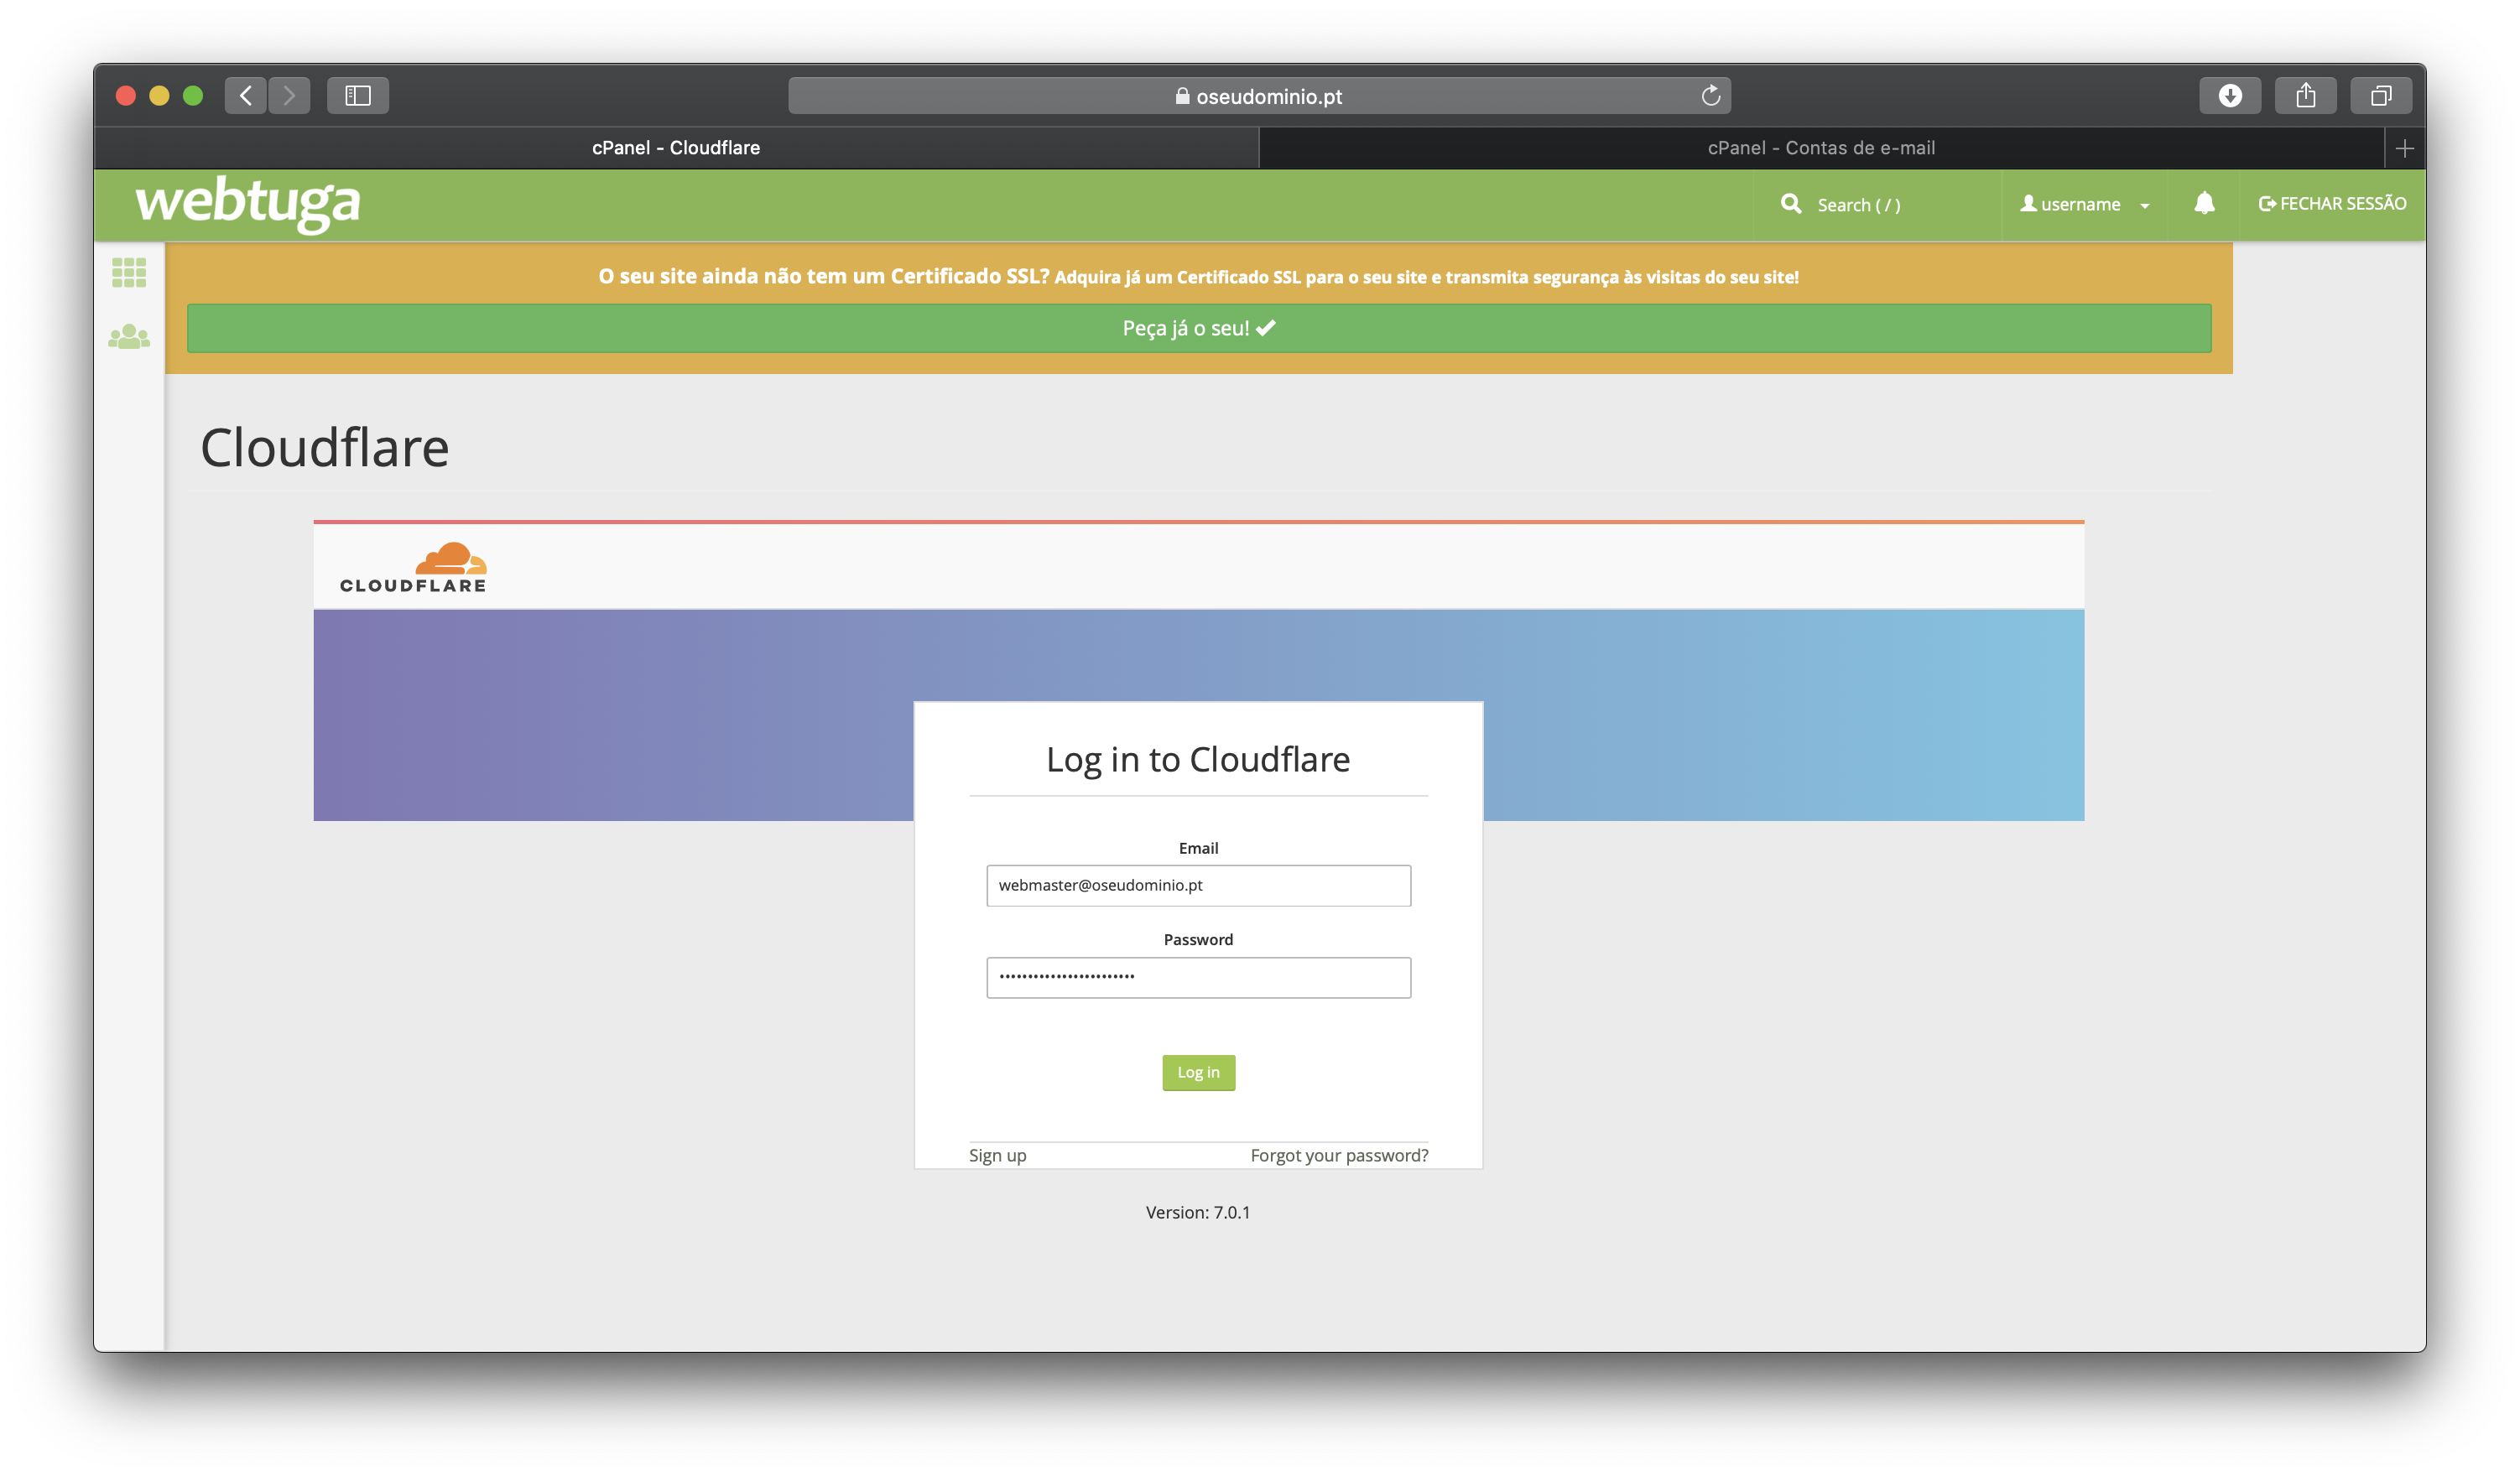 cloudflare-activar-cpanel-4.png